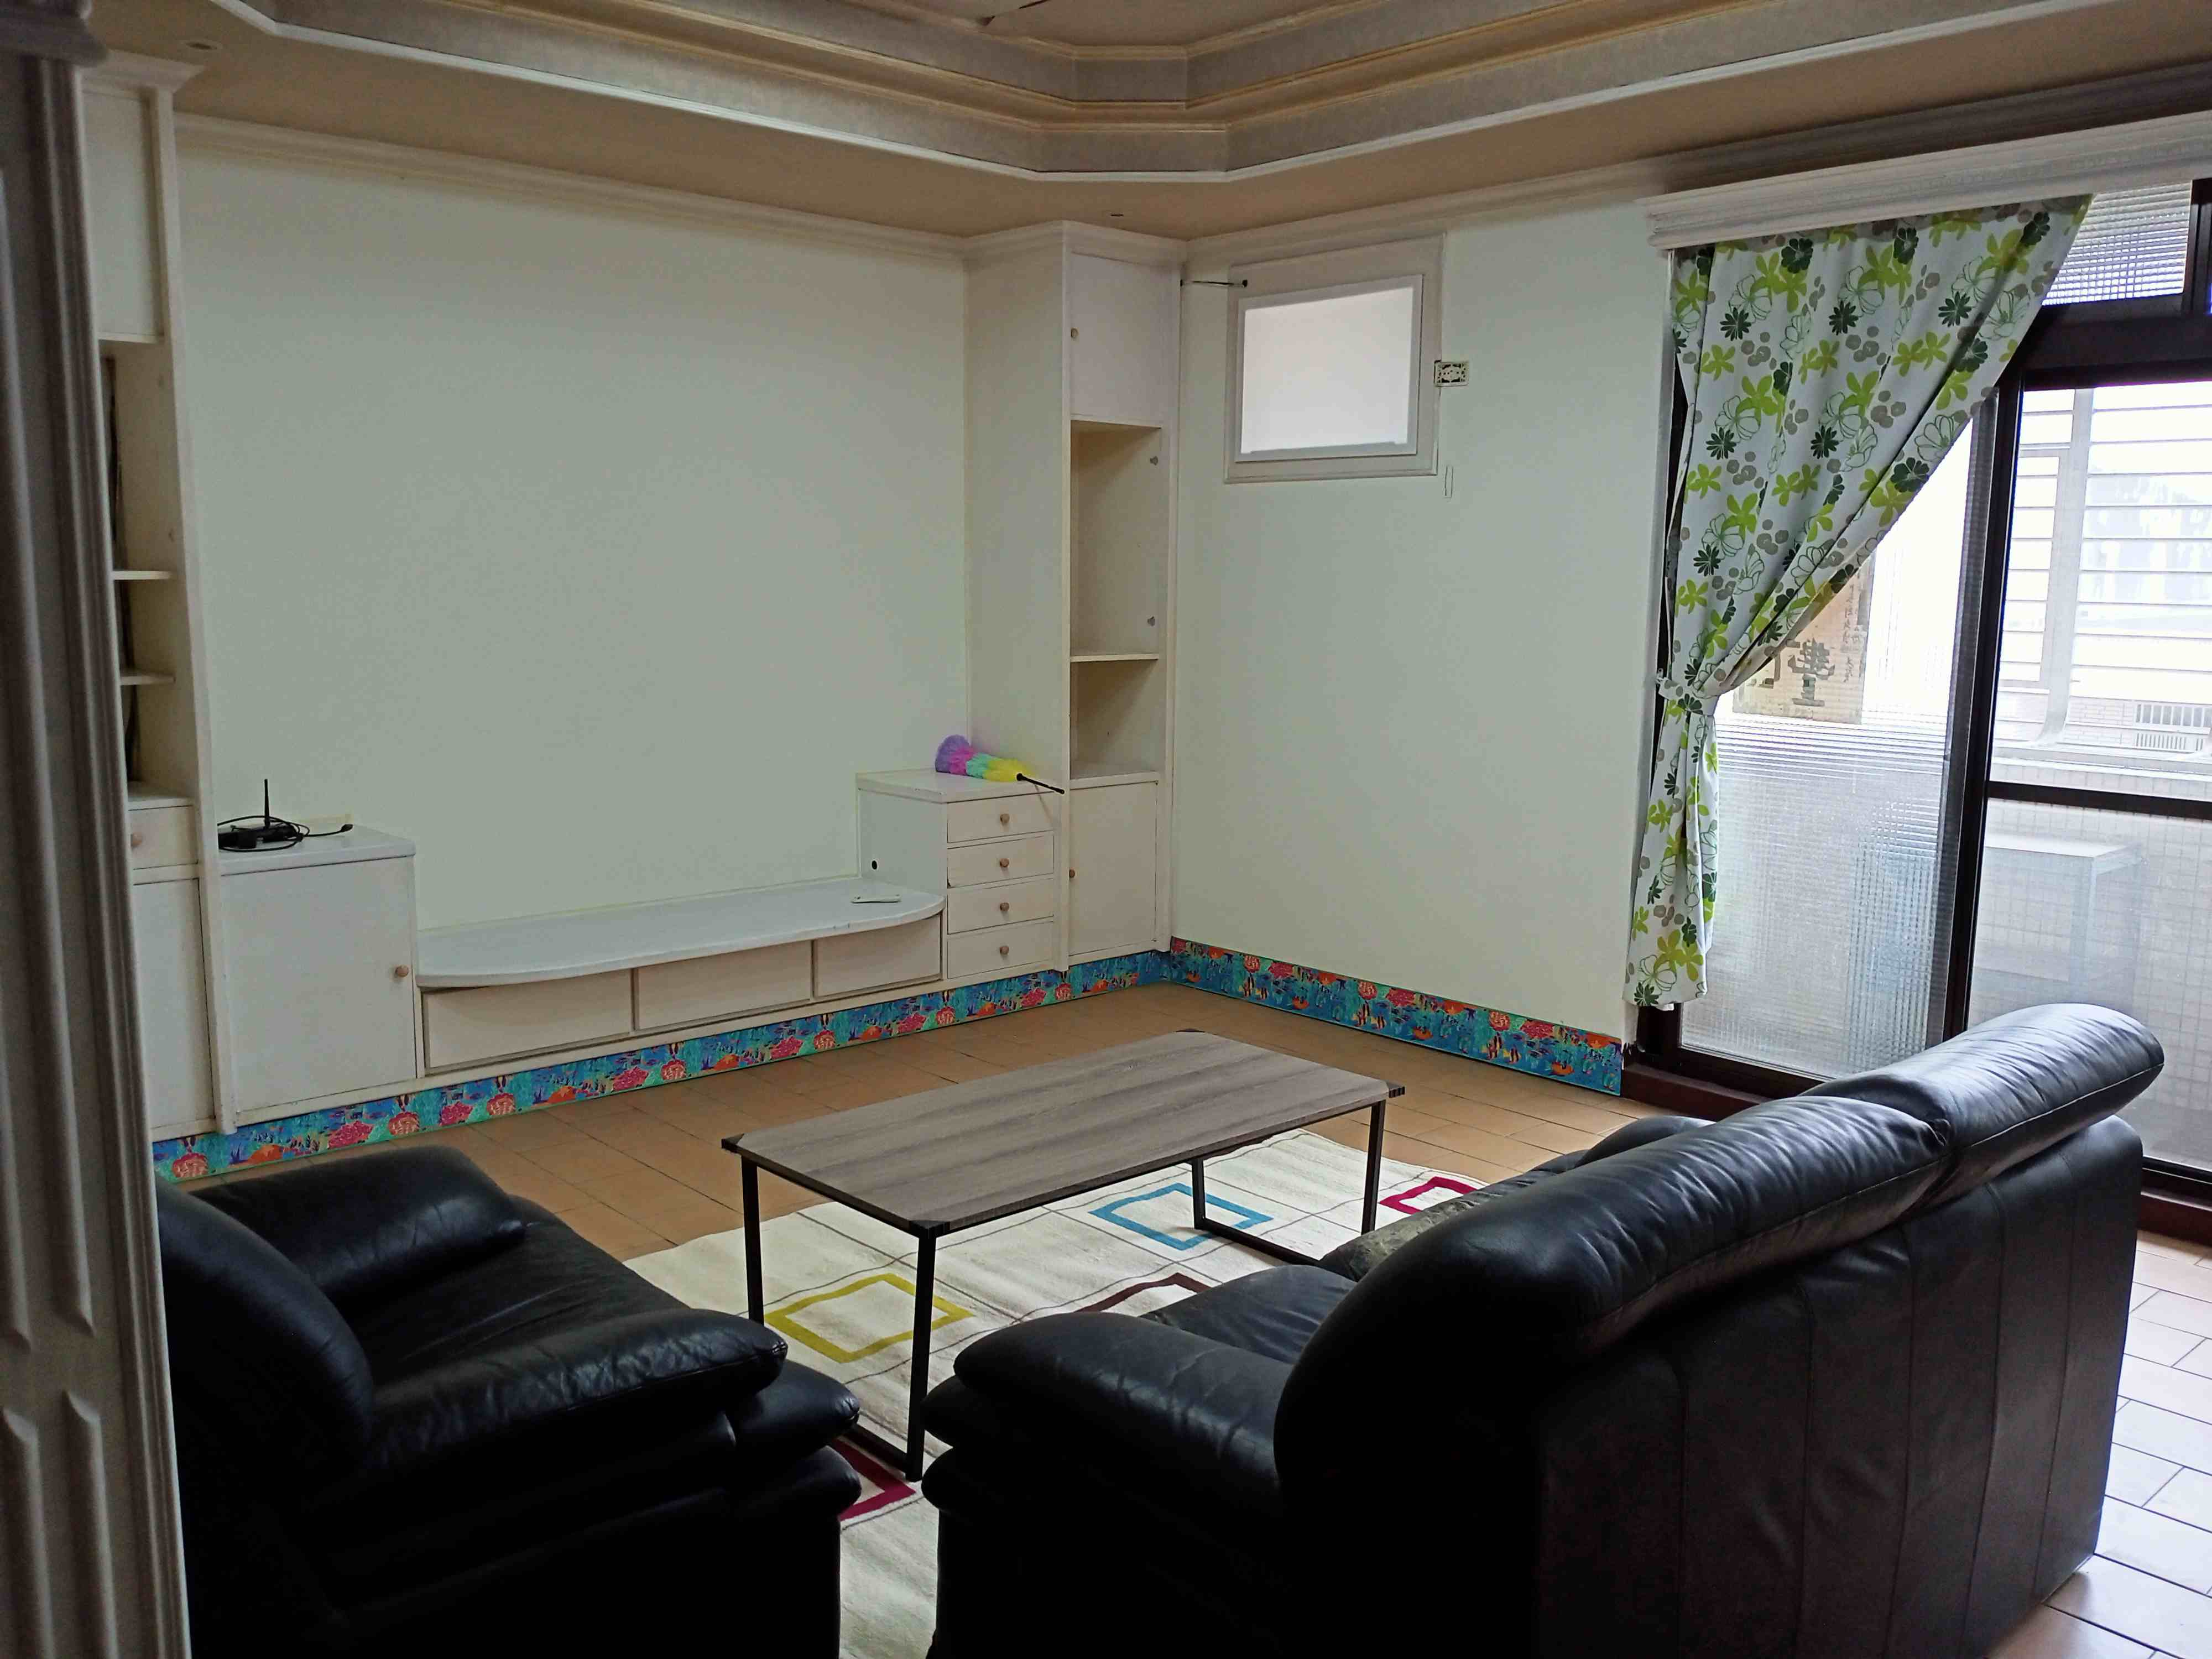 Teaching English and Living in Taiwan, cozy room shareing for a good tenant image